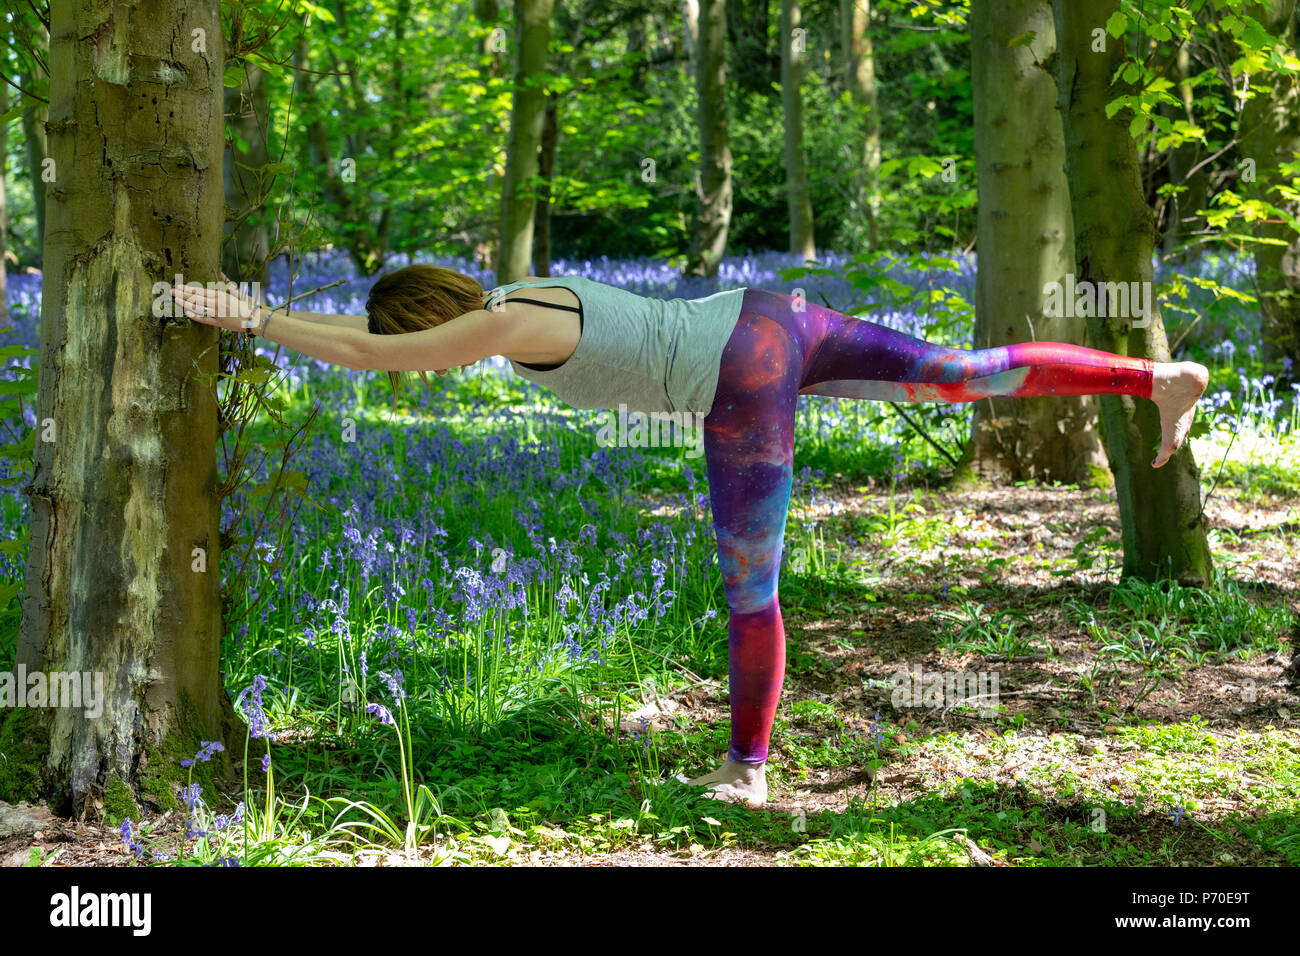 A yoga instructor demonstrates yoga poses during an outdoor yoga